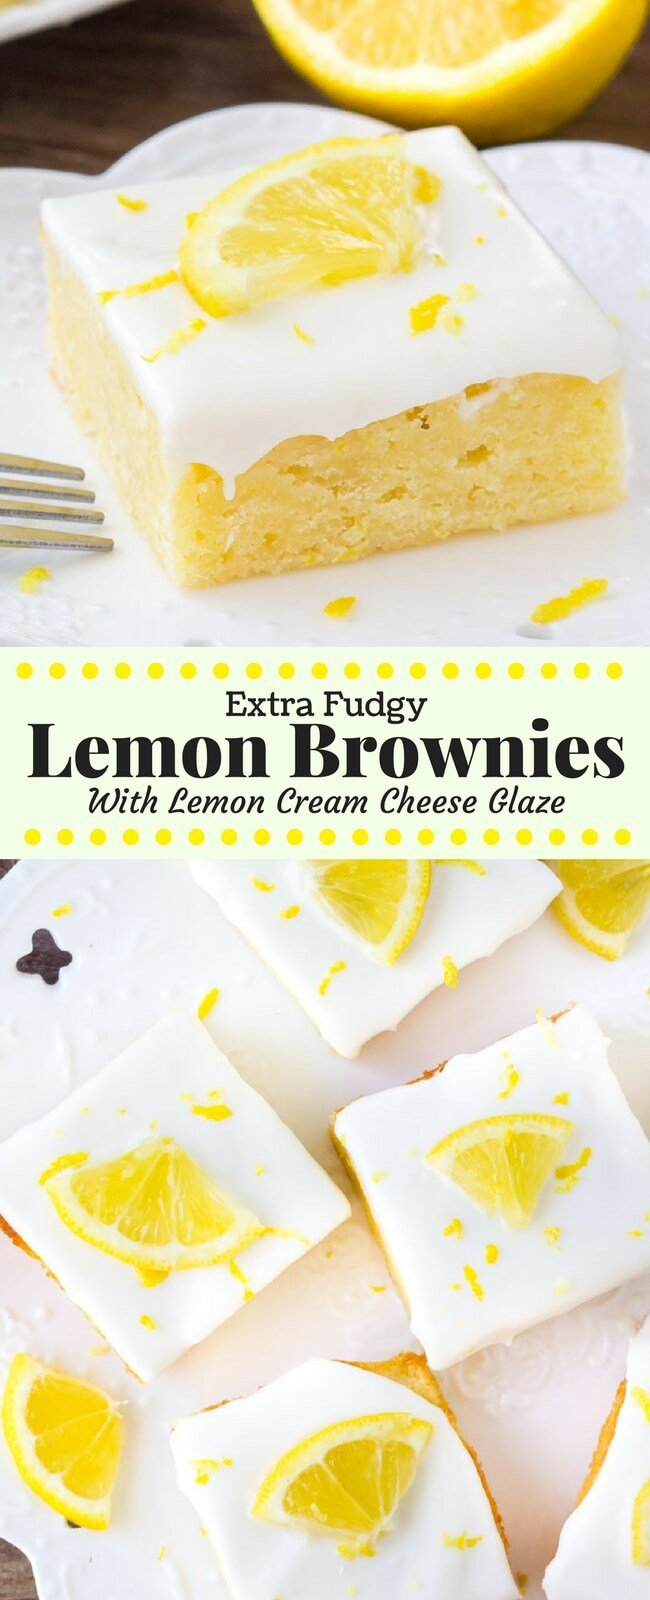 Lemon brownies are insanely delicious fudgy lemon bars with a sweet lemon cream cheese glaze. They're sometimes called lemonies or lemon blondies - but either way they mean delicious. #lemon #lemonies #blondies #brownies #lemonbars #lemonbrownies #recipes